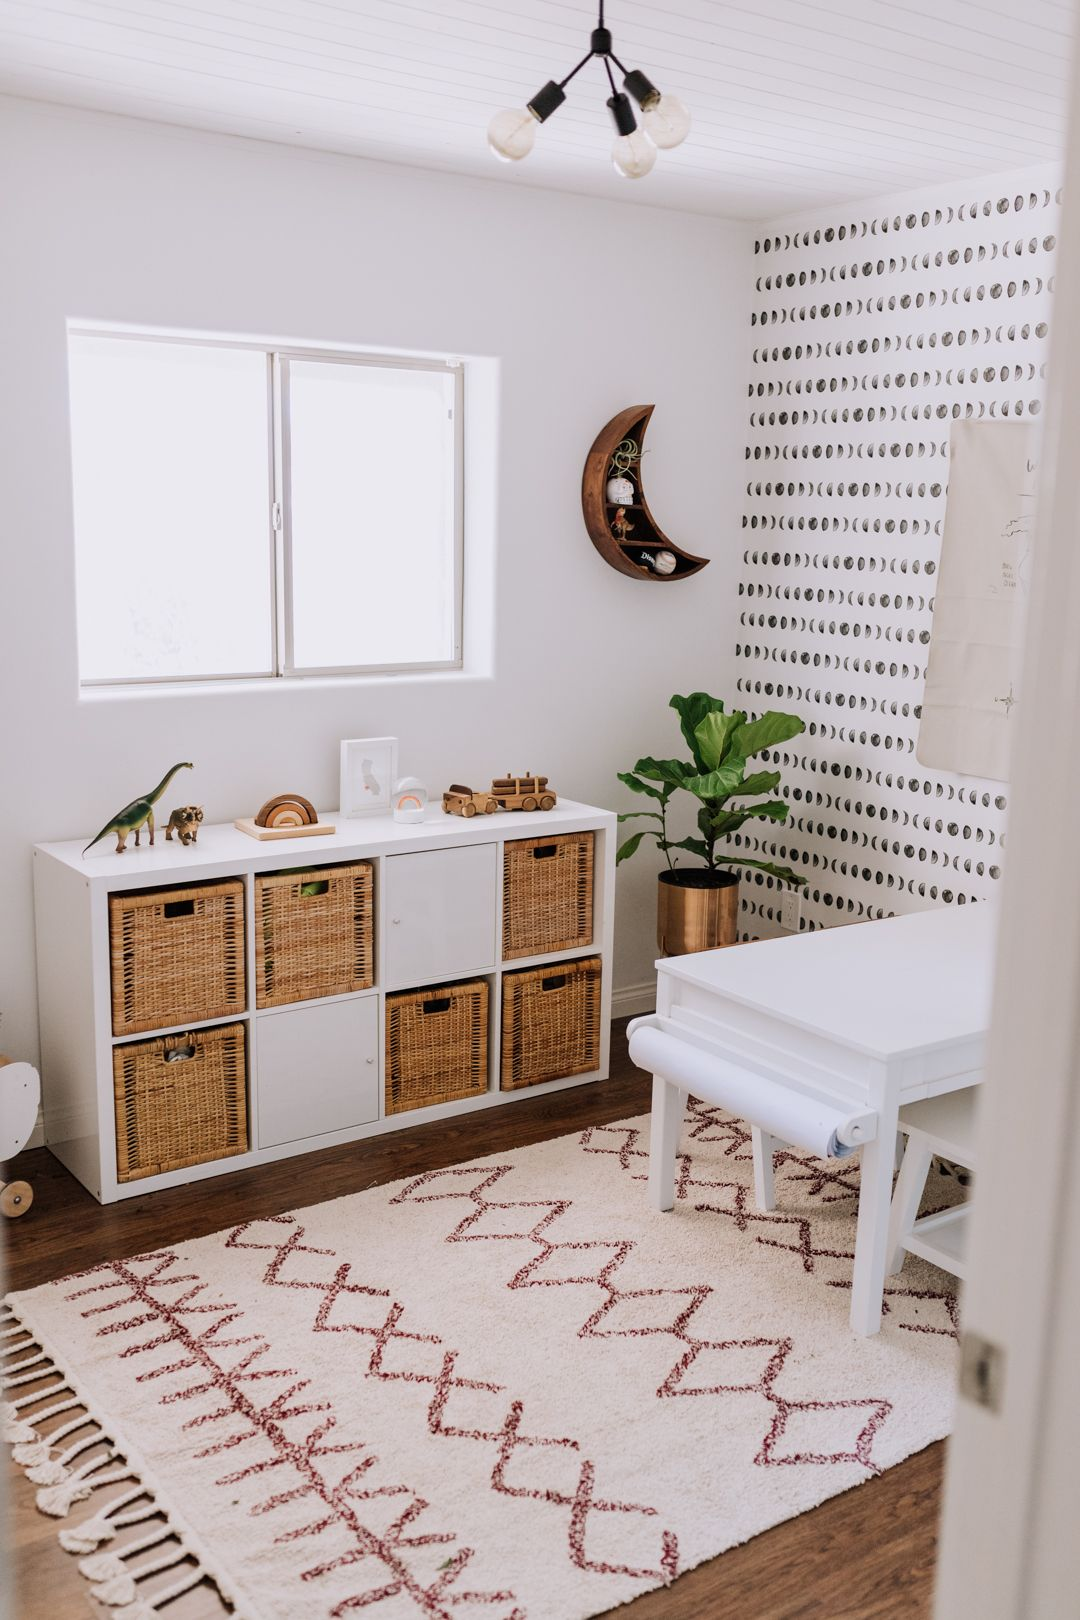 The Ldl Home: Our Playroom Reveal | New House | Kids Room Wallpaper